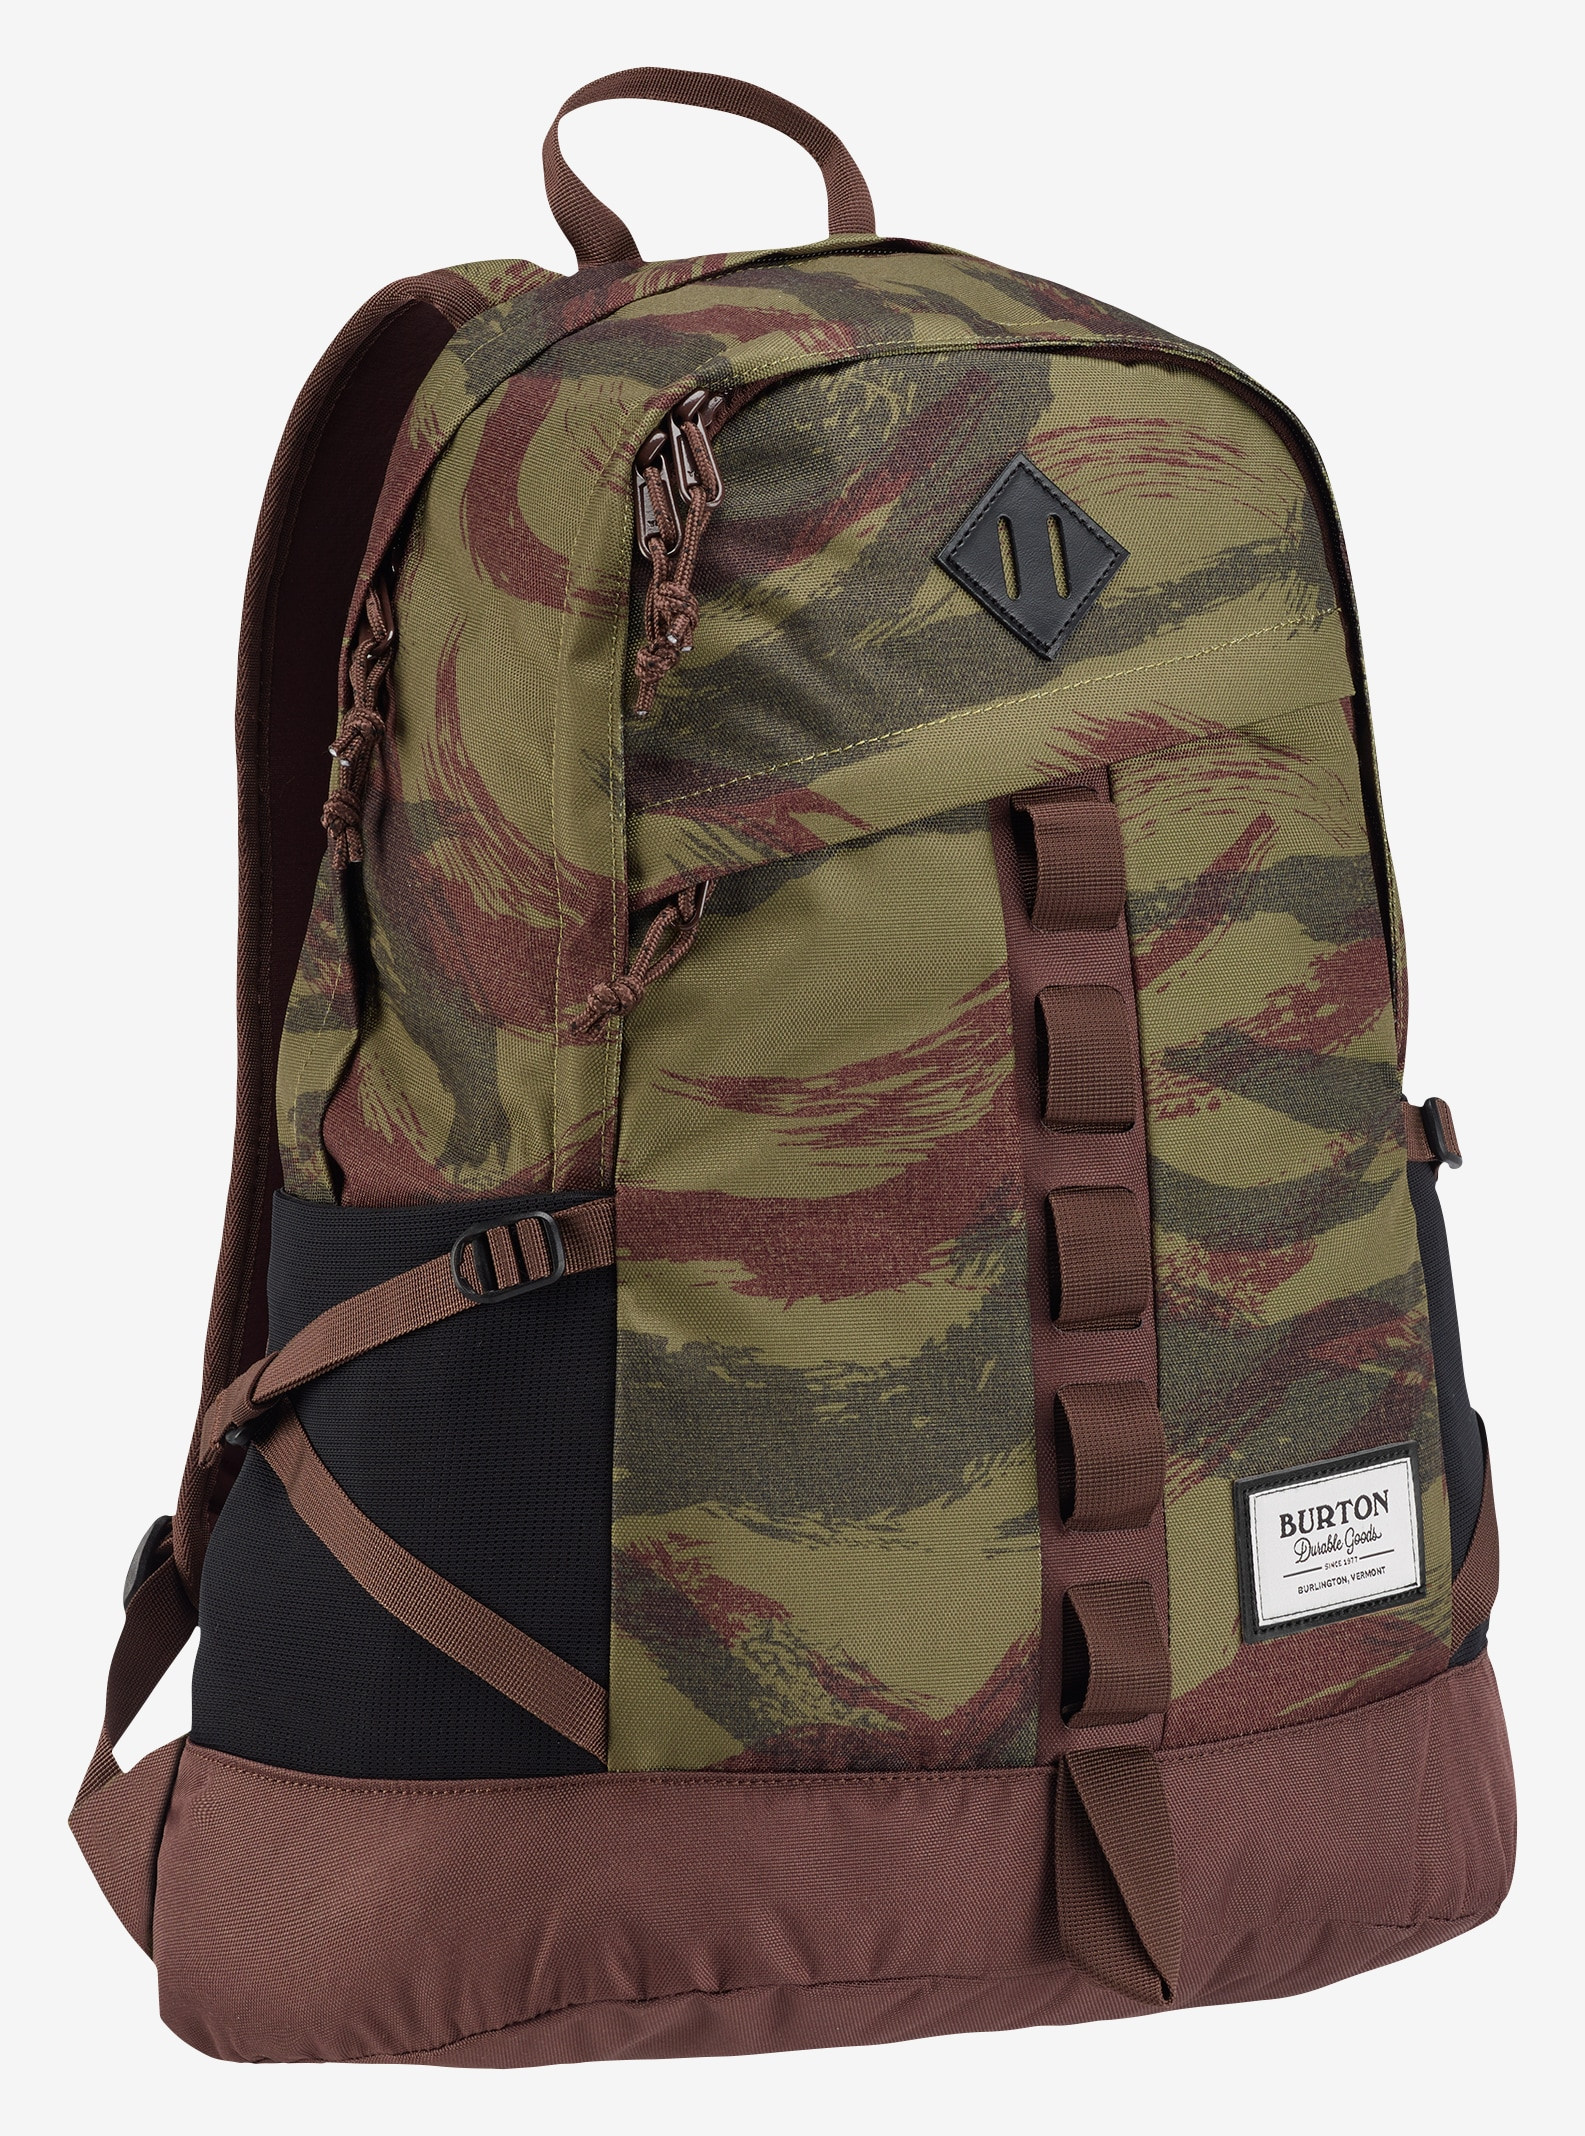 Burton Shackford Backpack shown in Brushstroke Camo Print